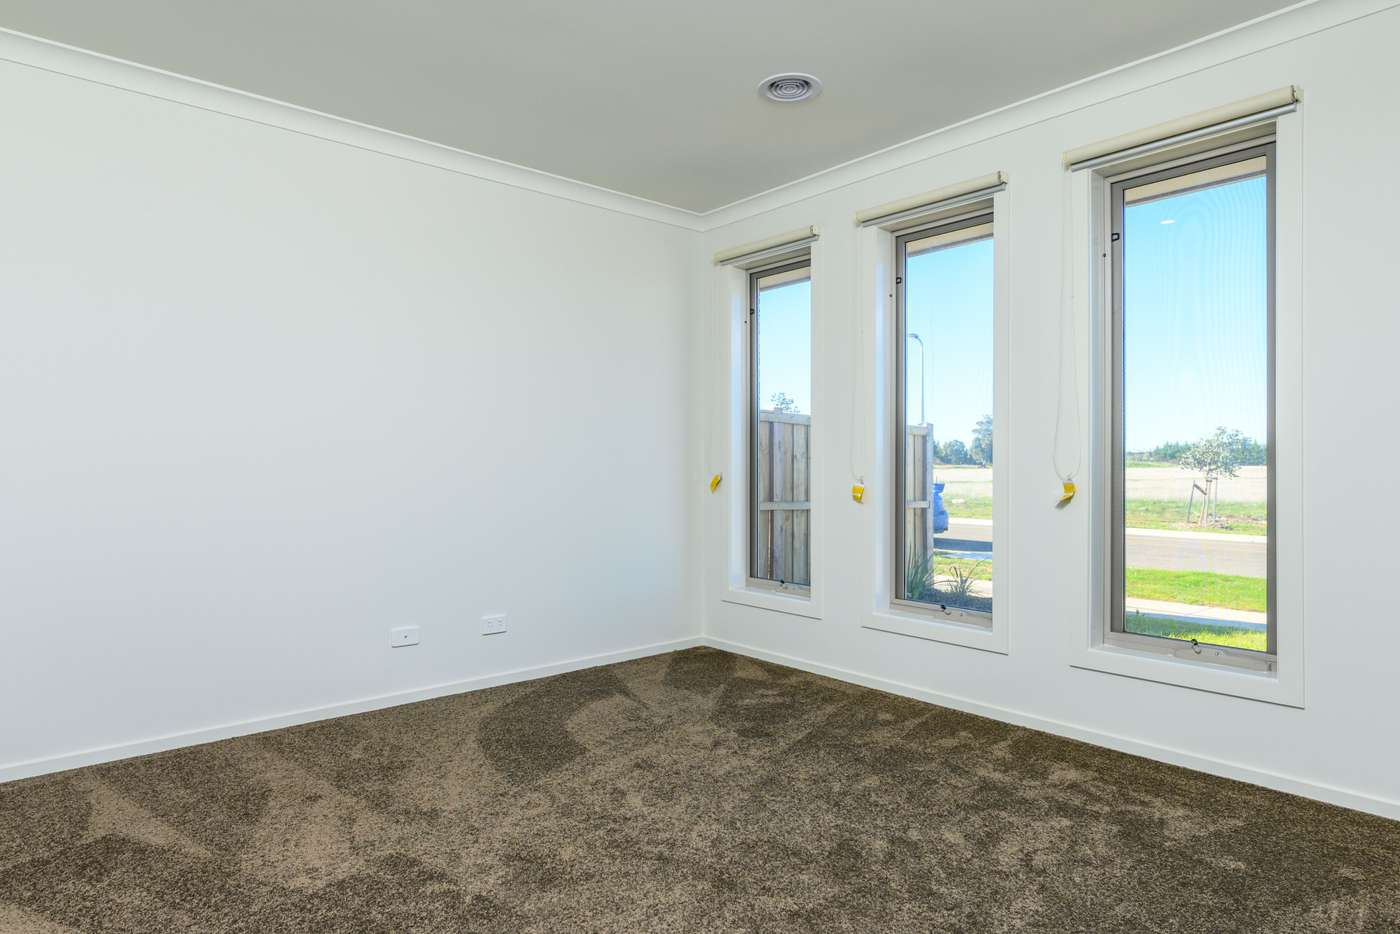 Sixth view of Homely house listing, 4 Sunbeam Street, Smythes Creek VIC 3351